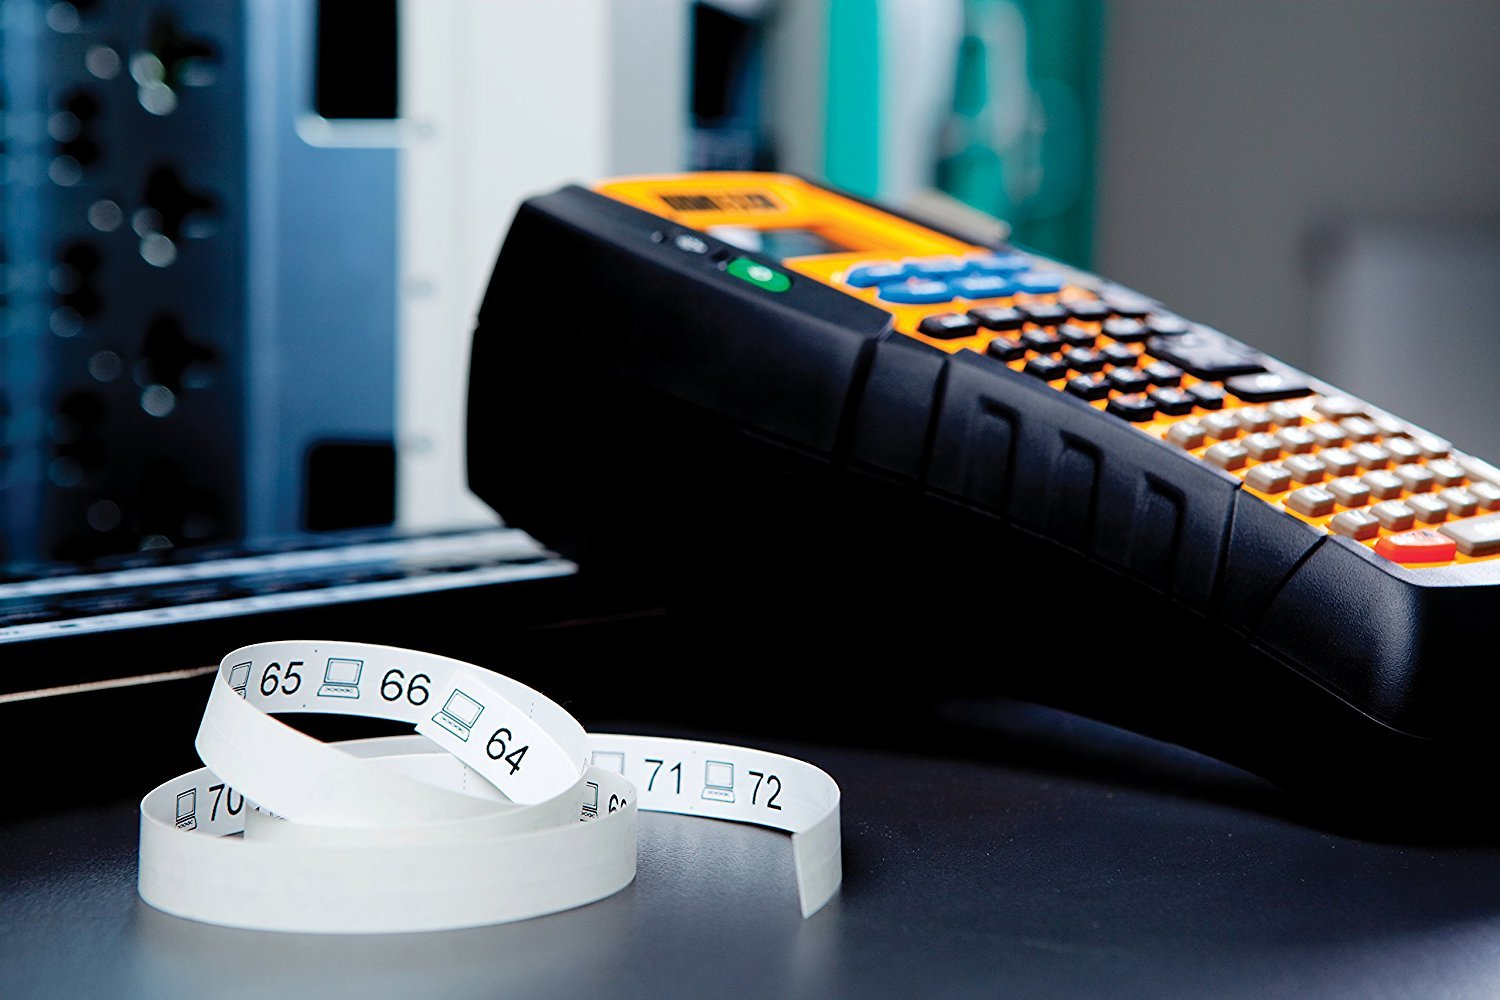 Dymo Industrial Rhino 5200 Label Maker 1755749 Office Home Brady Bmp21 Hand Held Printer Electrical Kit Products